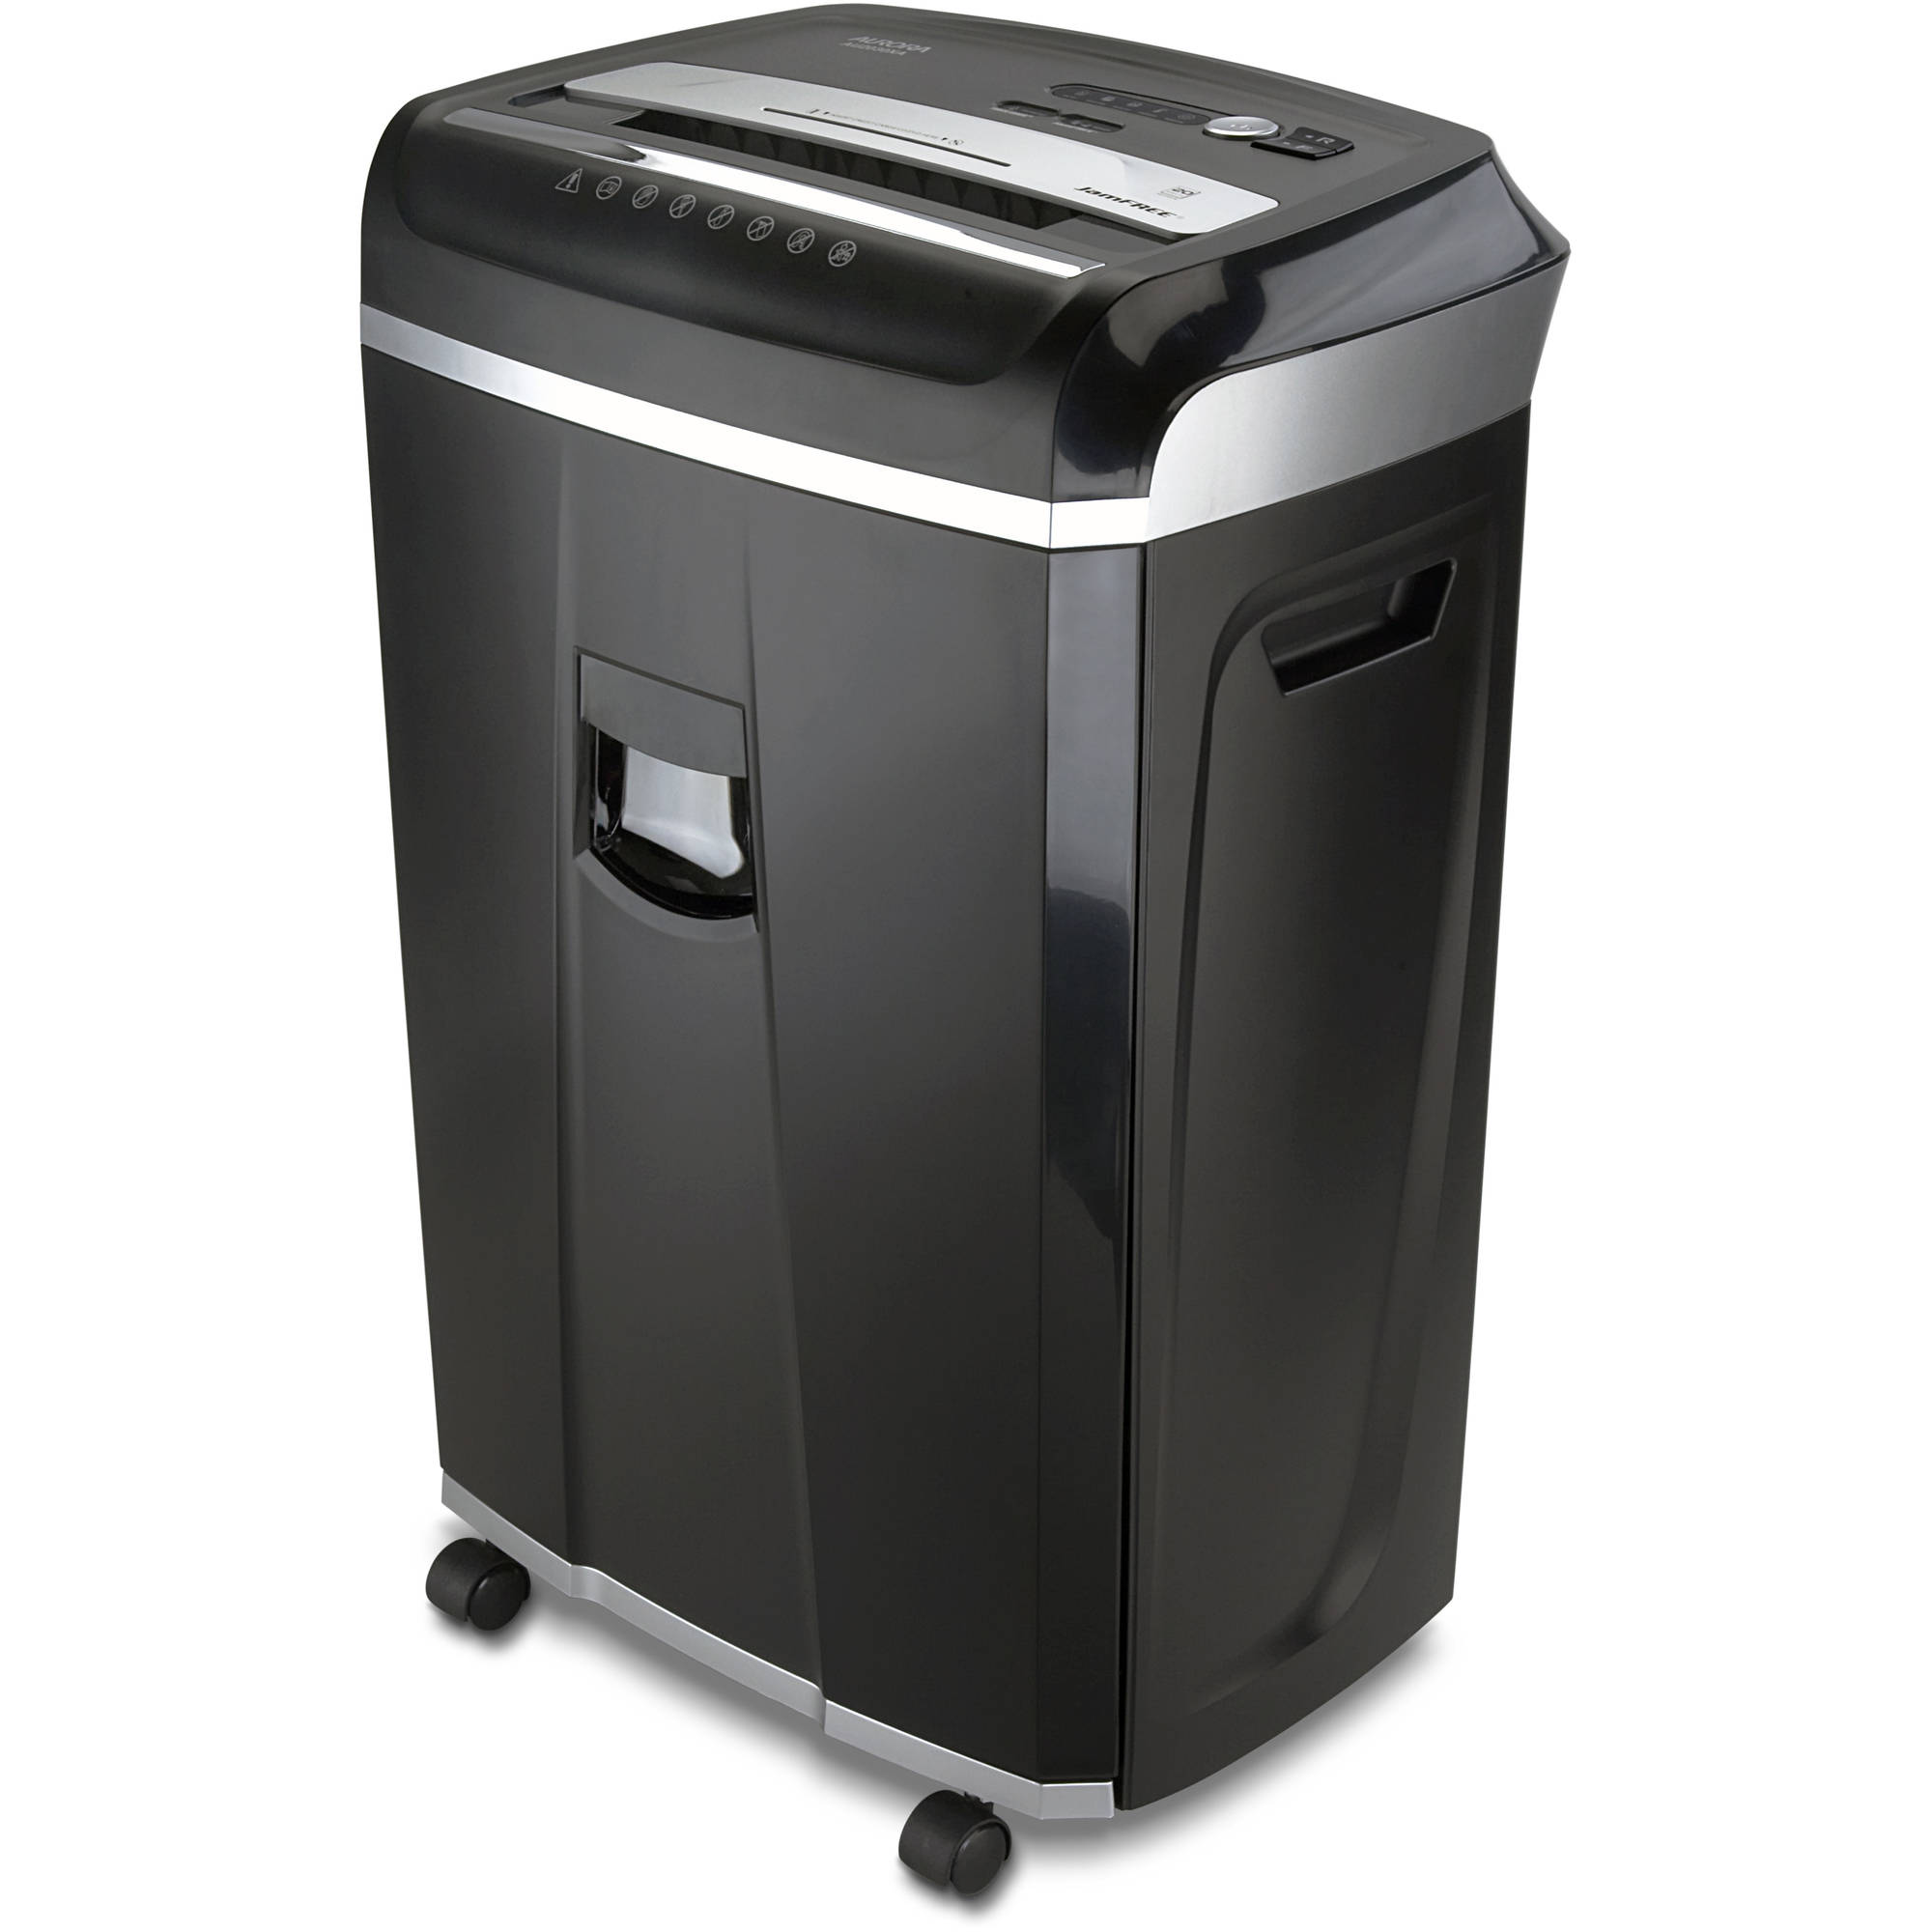 Aurora JamFree AU2030XA 20-Sheet Cross-Cut Paper/CD/Credit Card Shredder with Pull-Out Wastebasket